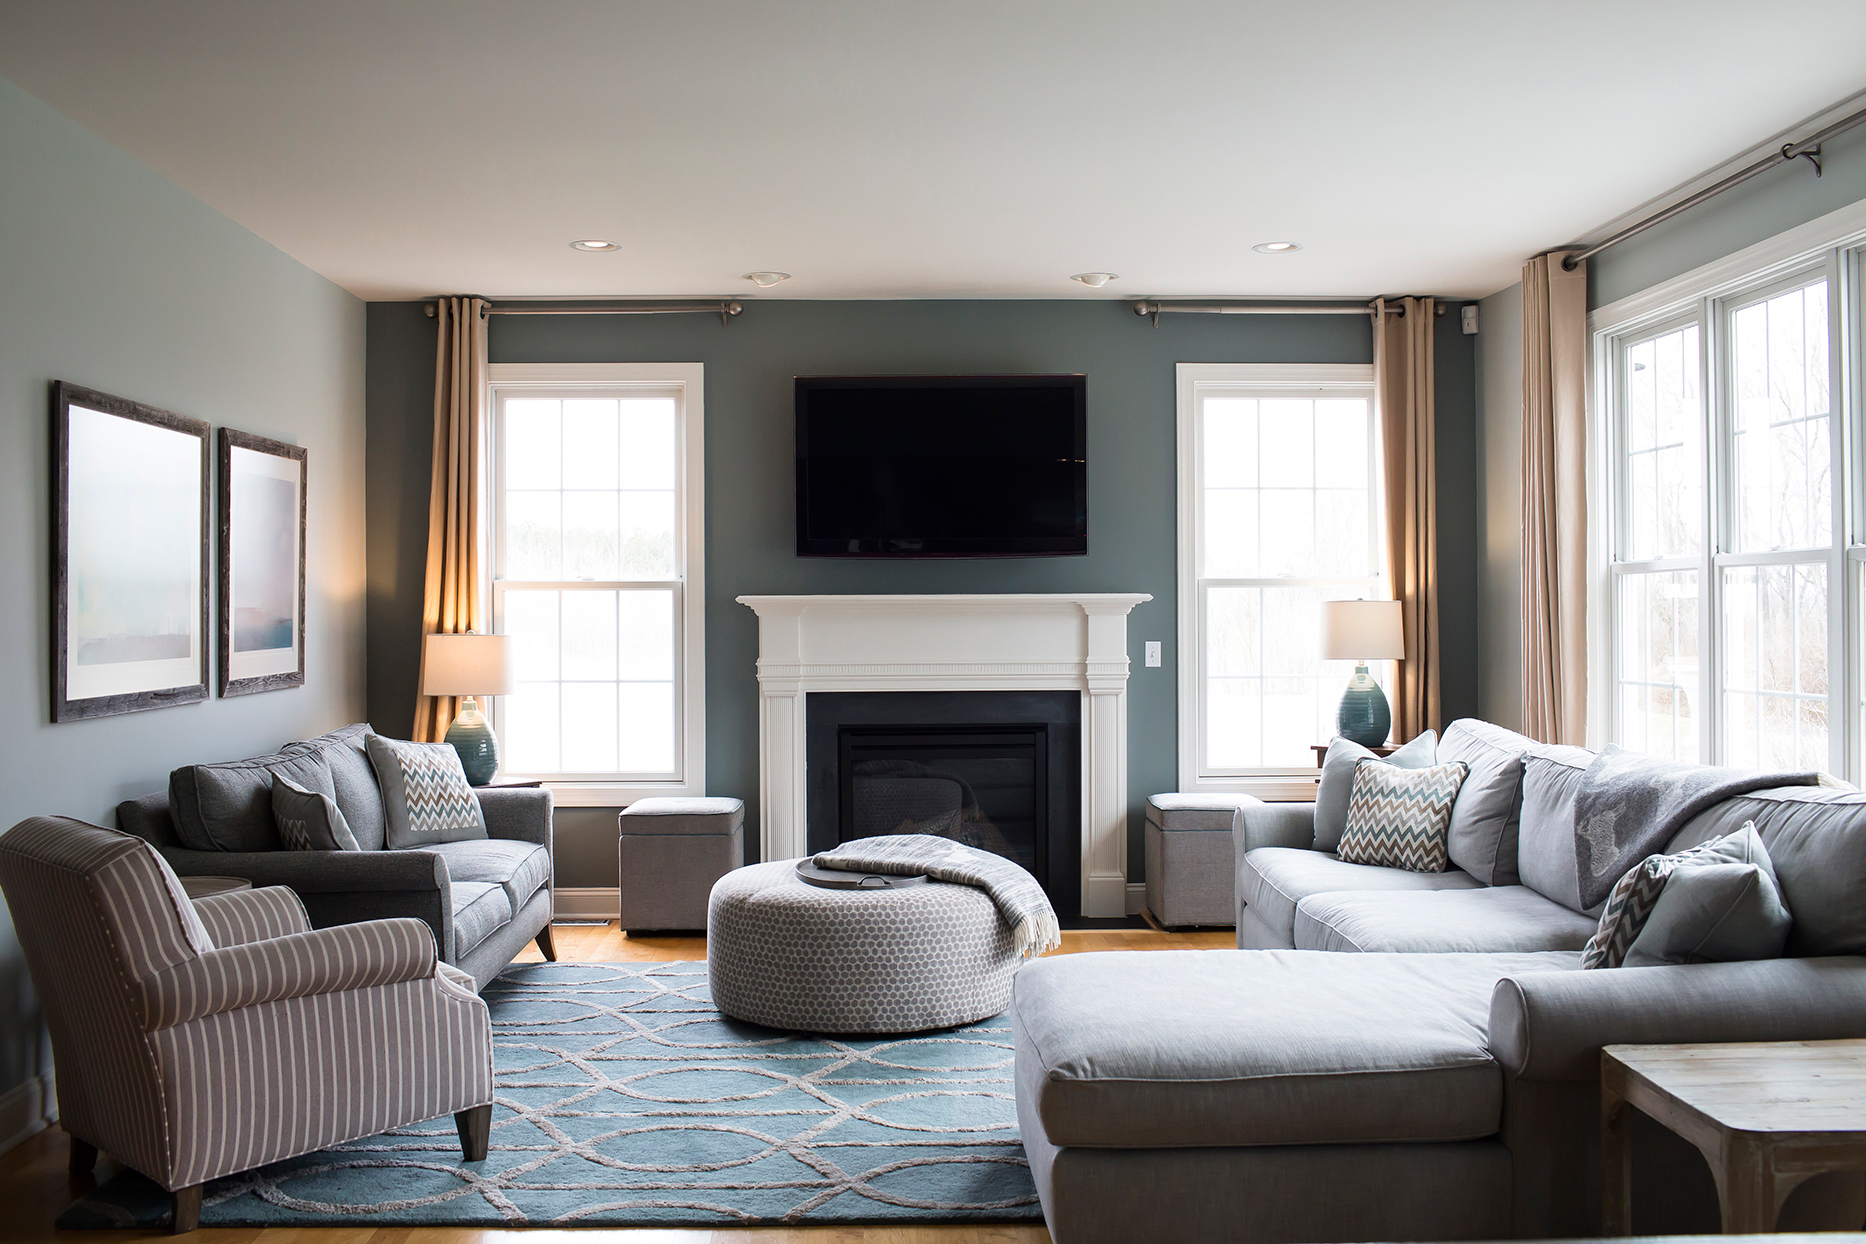 single hung windows in blue and gray living room